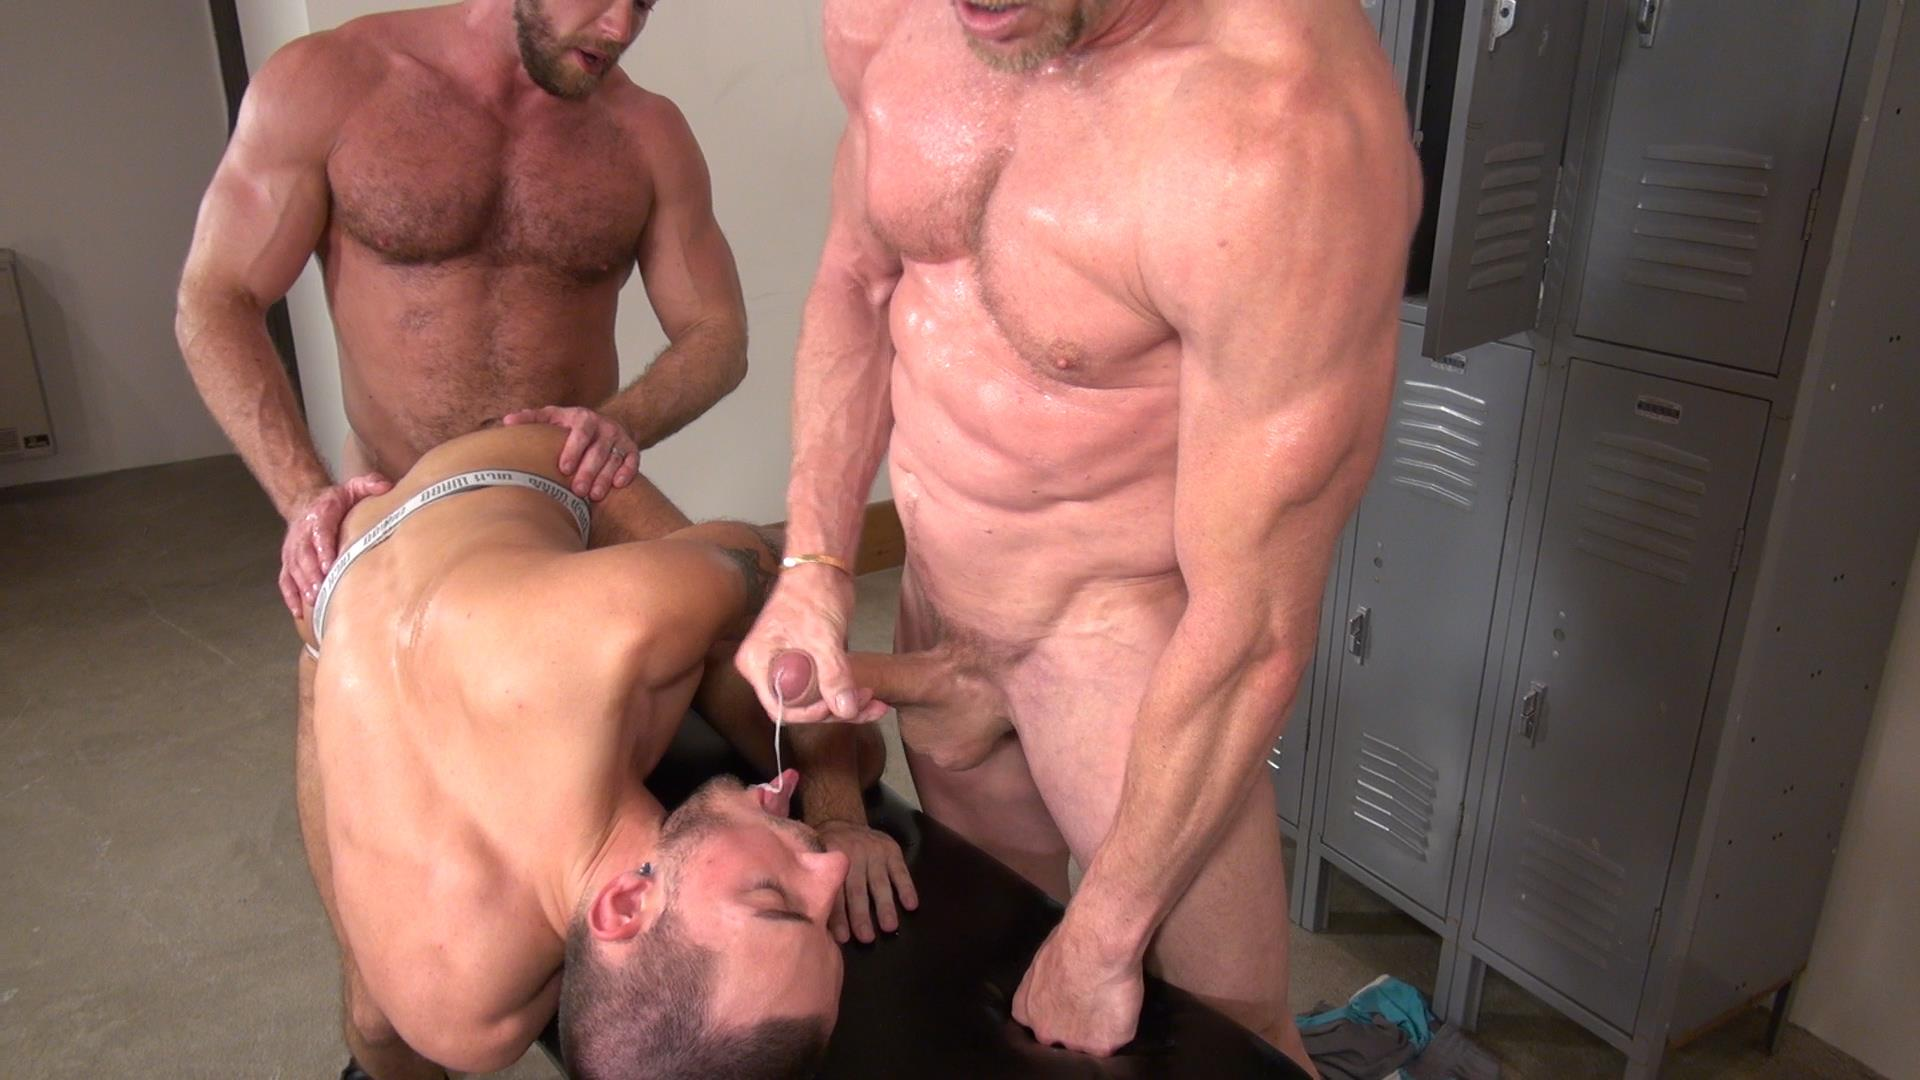 gay hard cock public show off xvideo